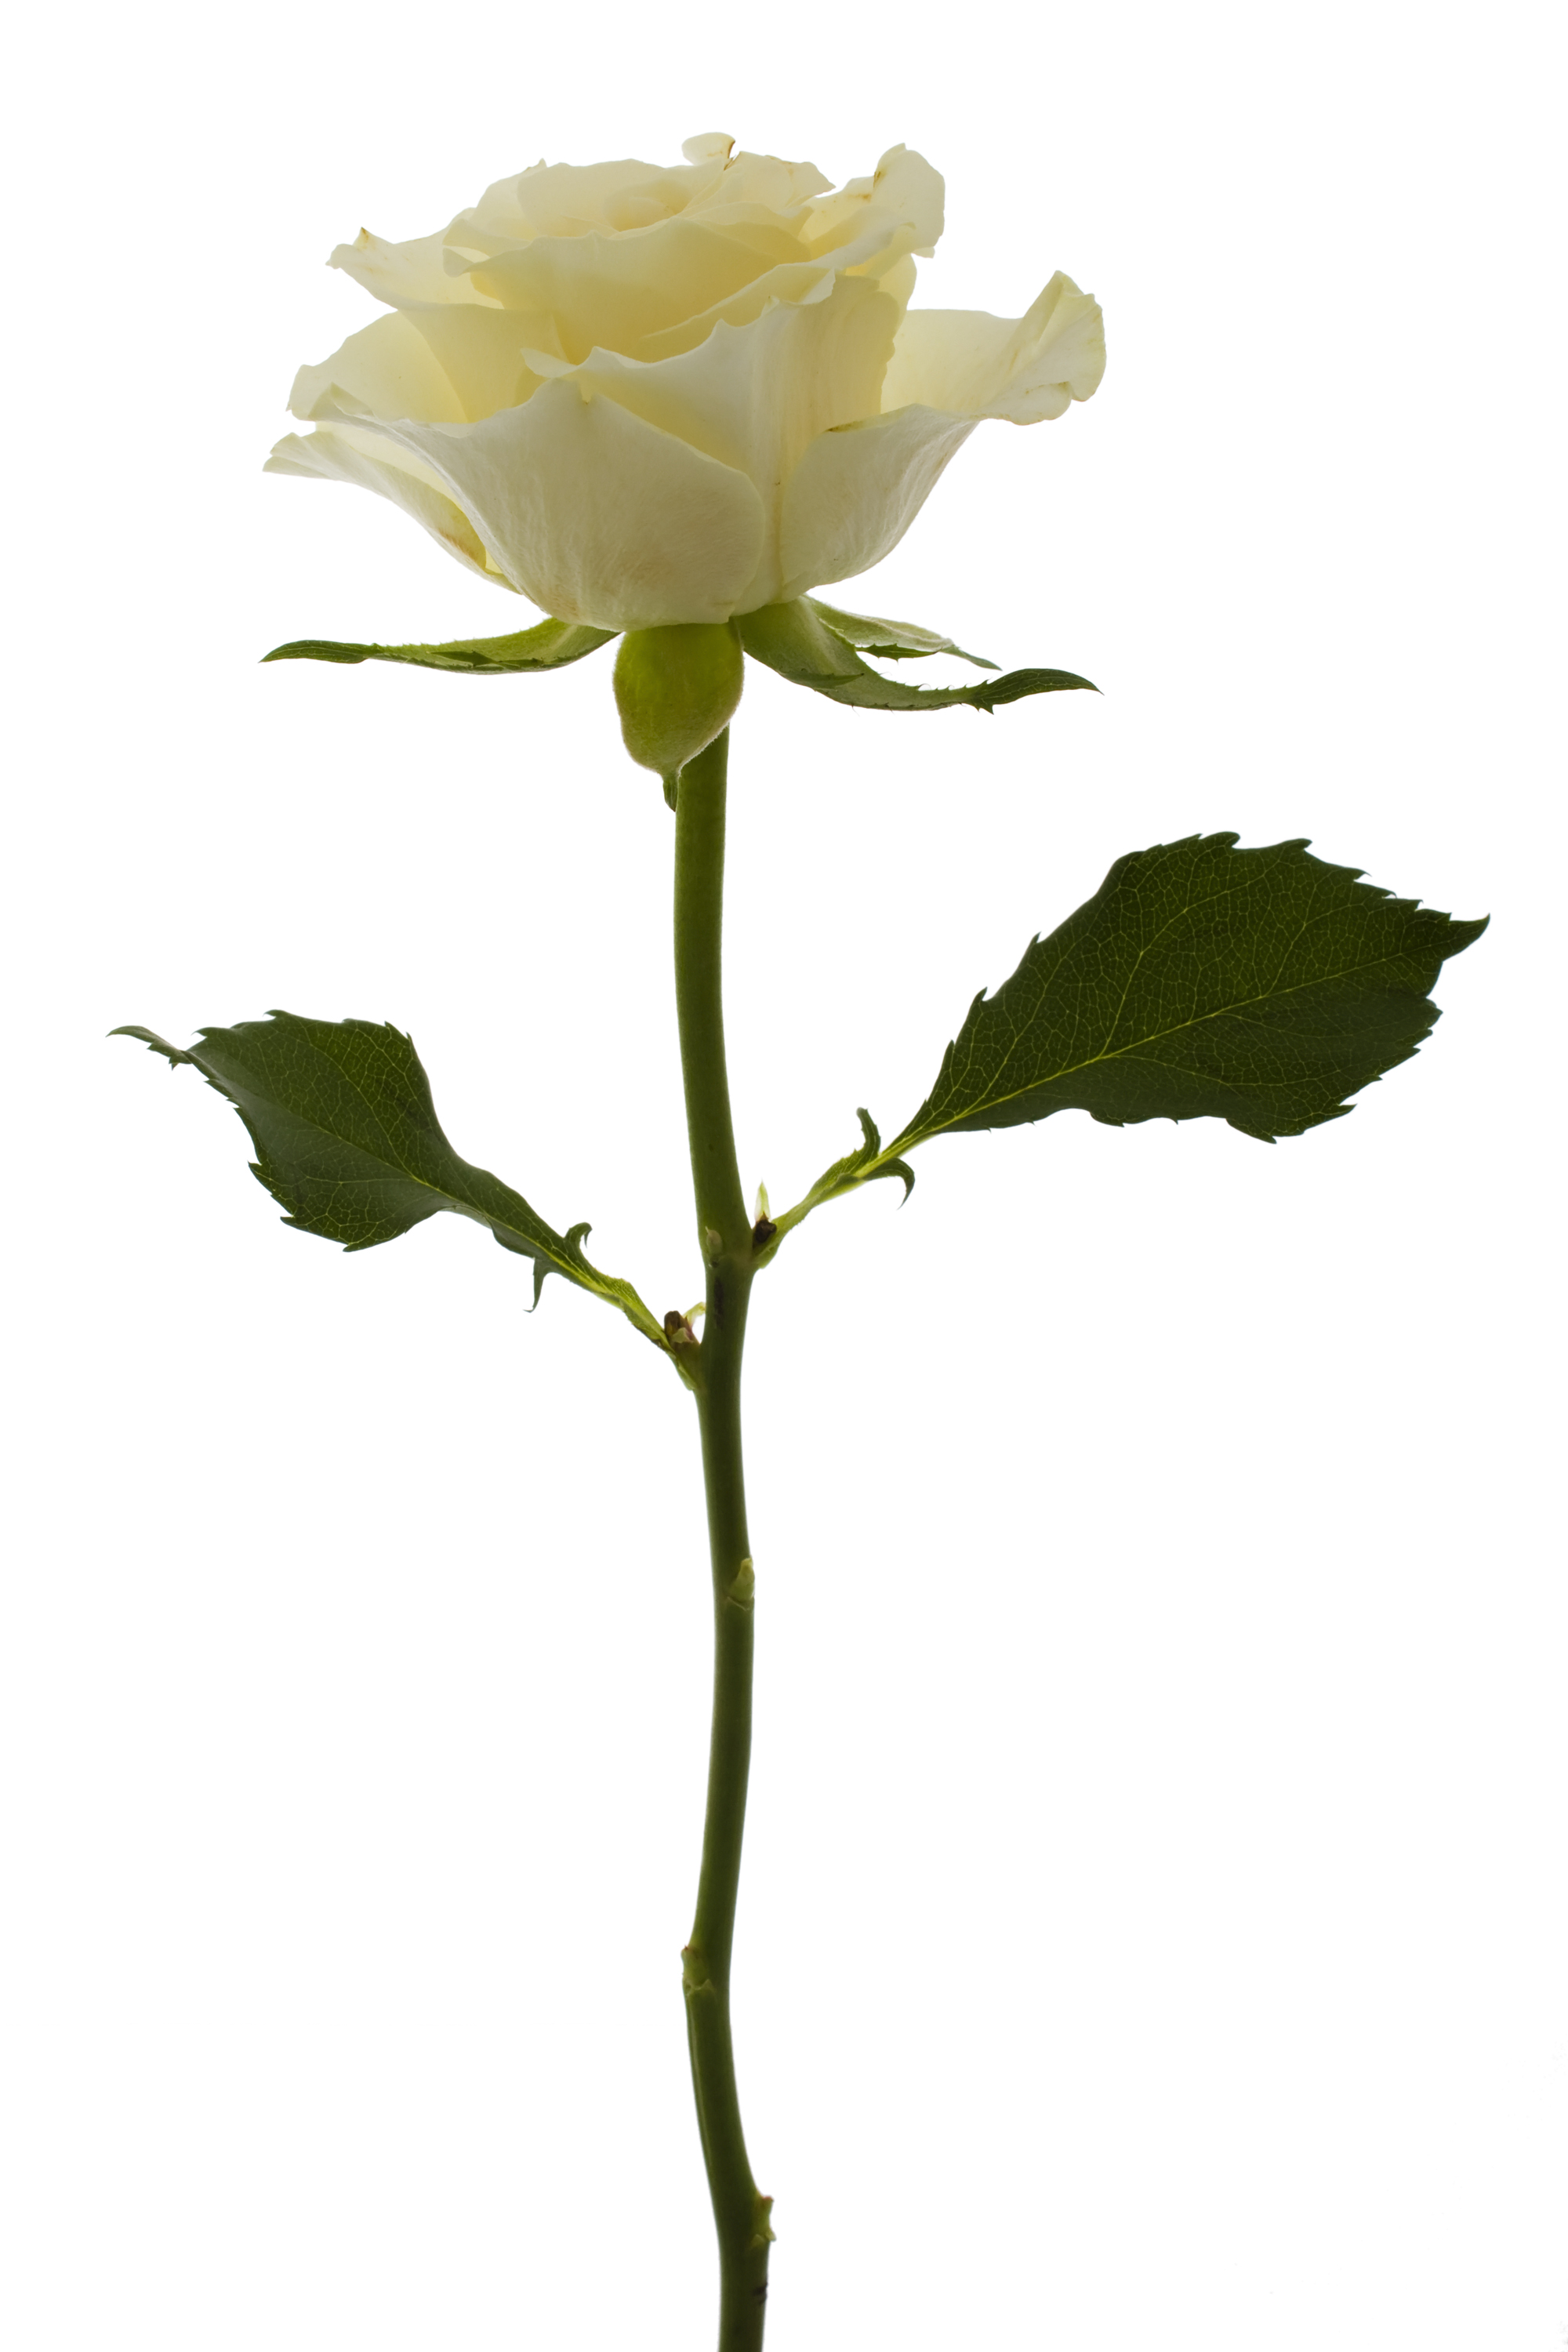 File:White Rose (5469345311).jpg - Wikimedia Commons